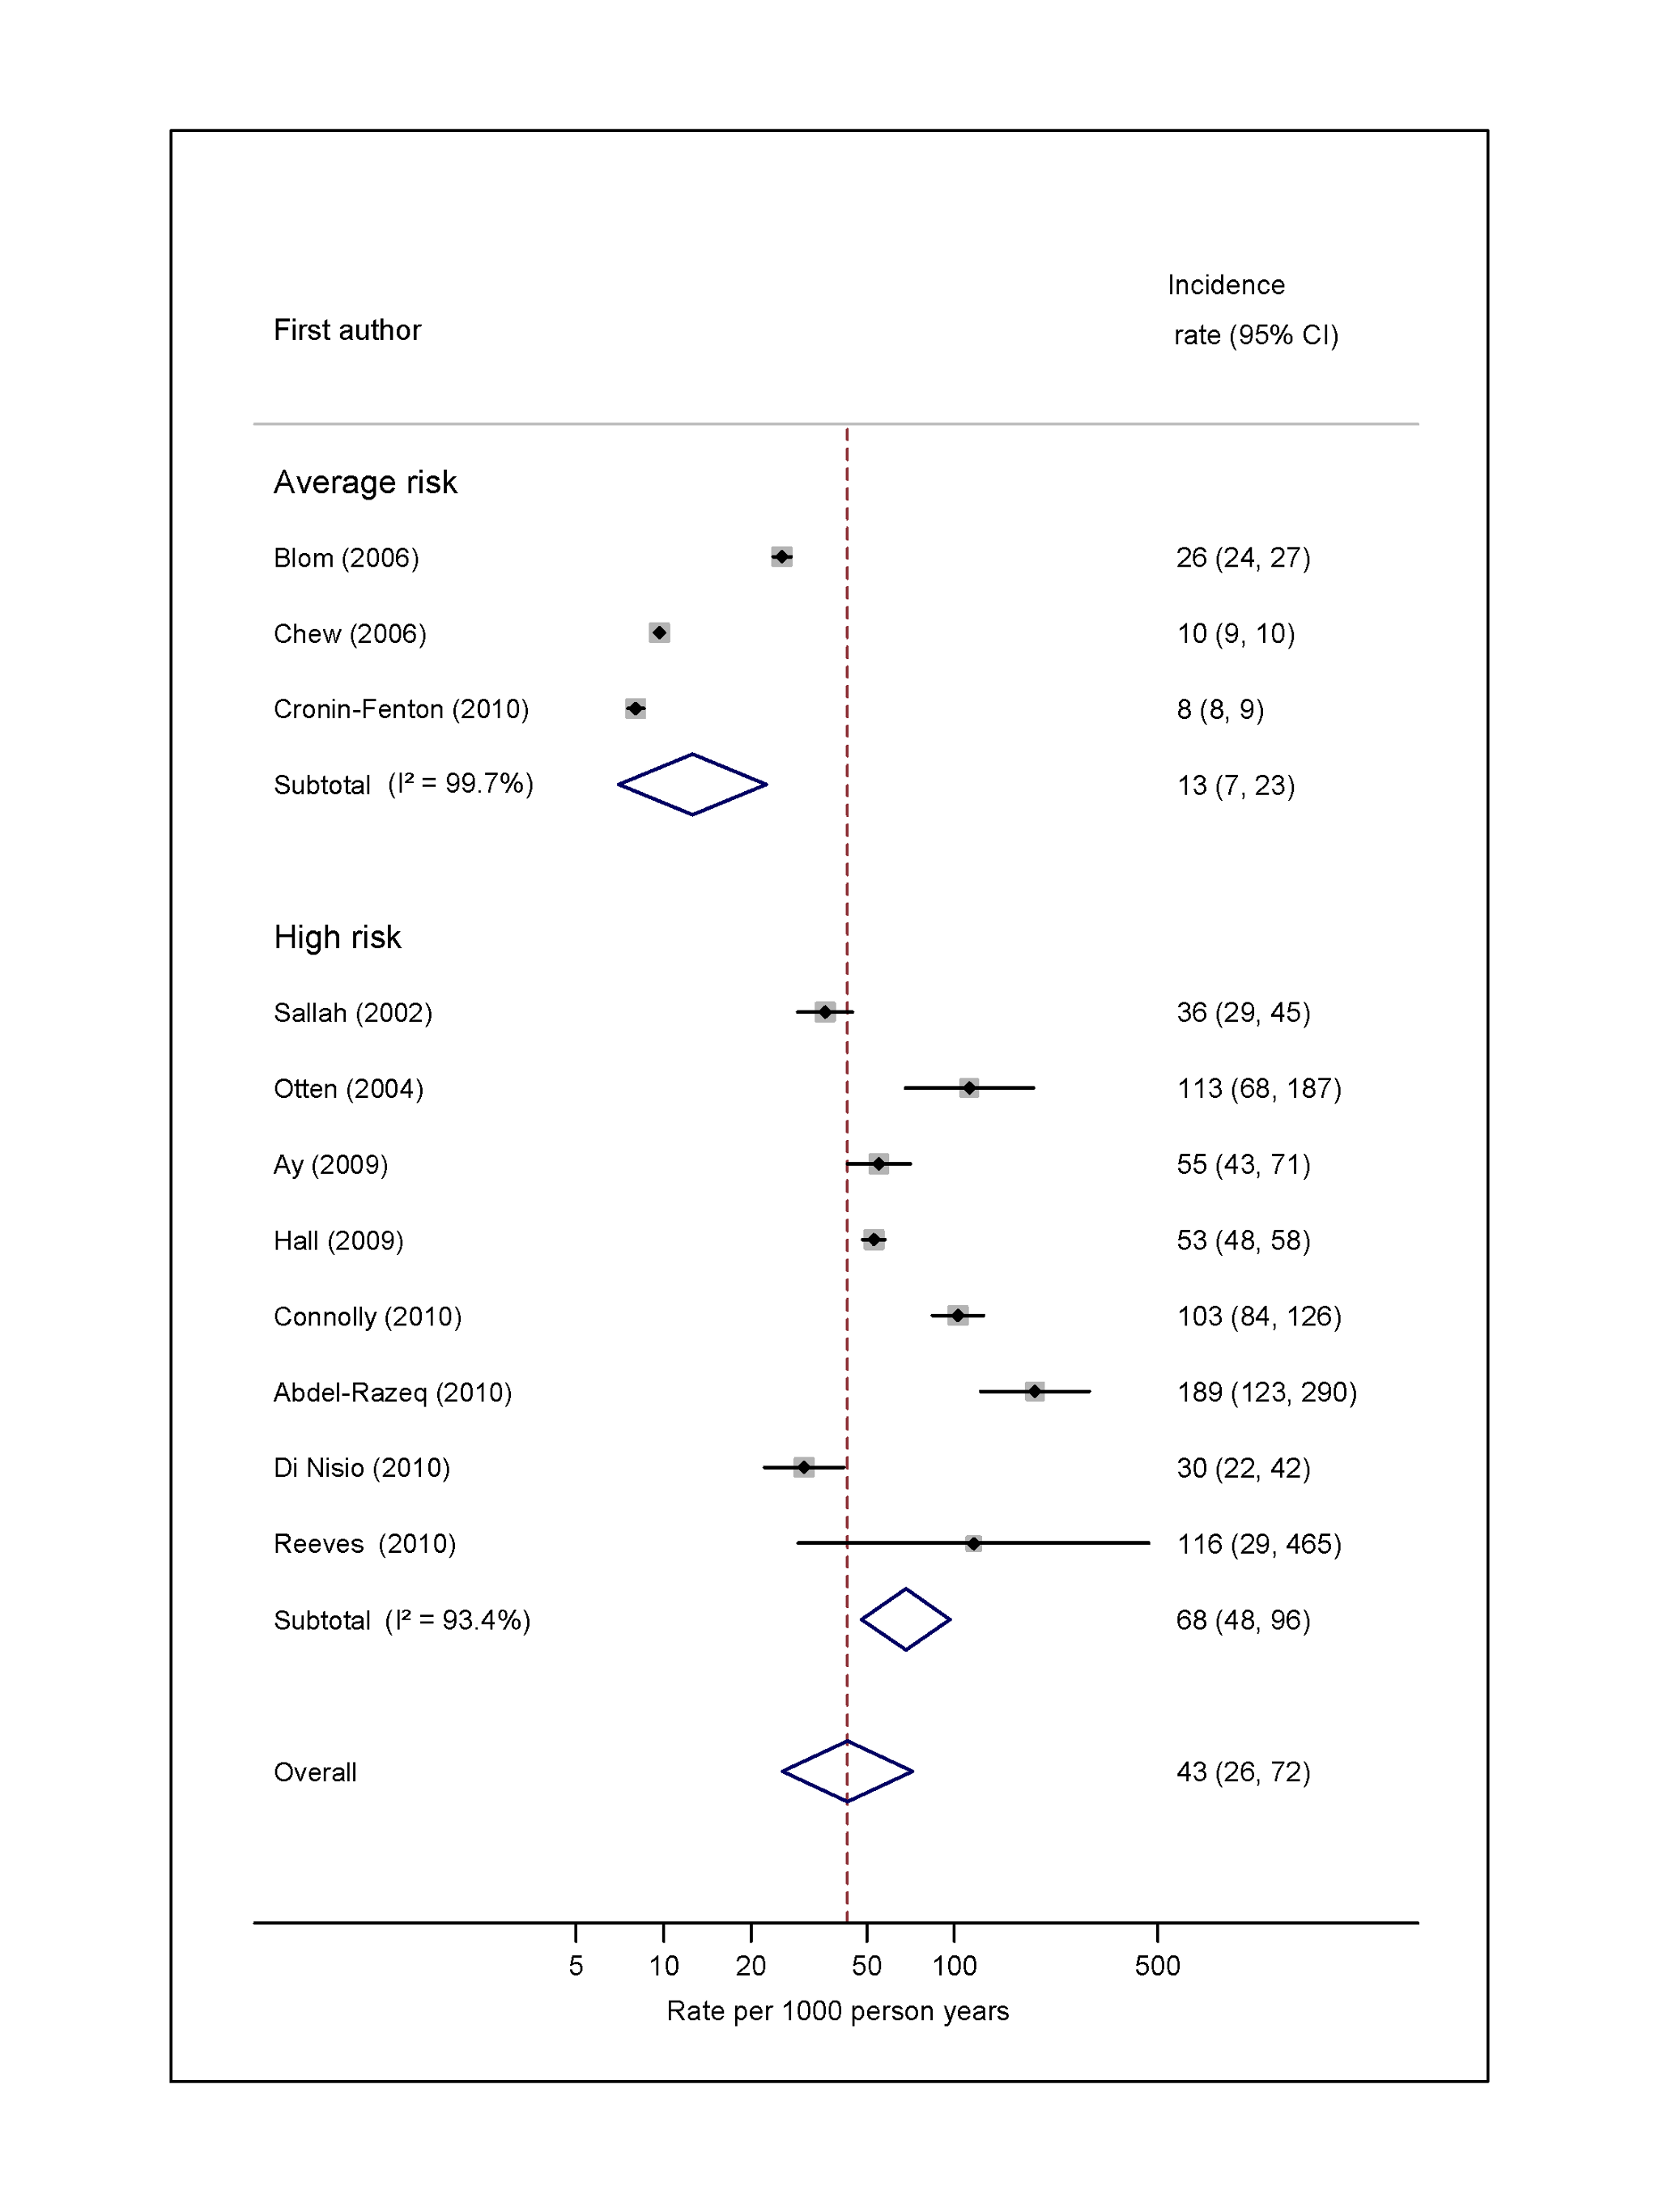 Pooled incidence of venous thromboembolism for overall cancer.